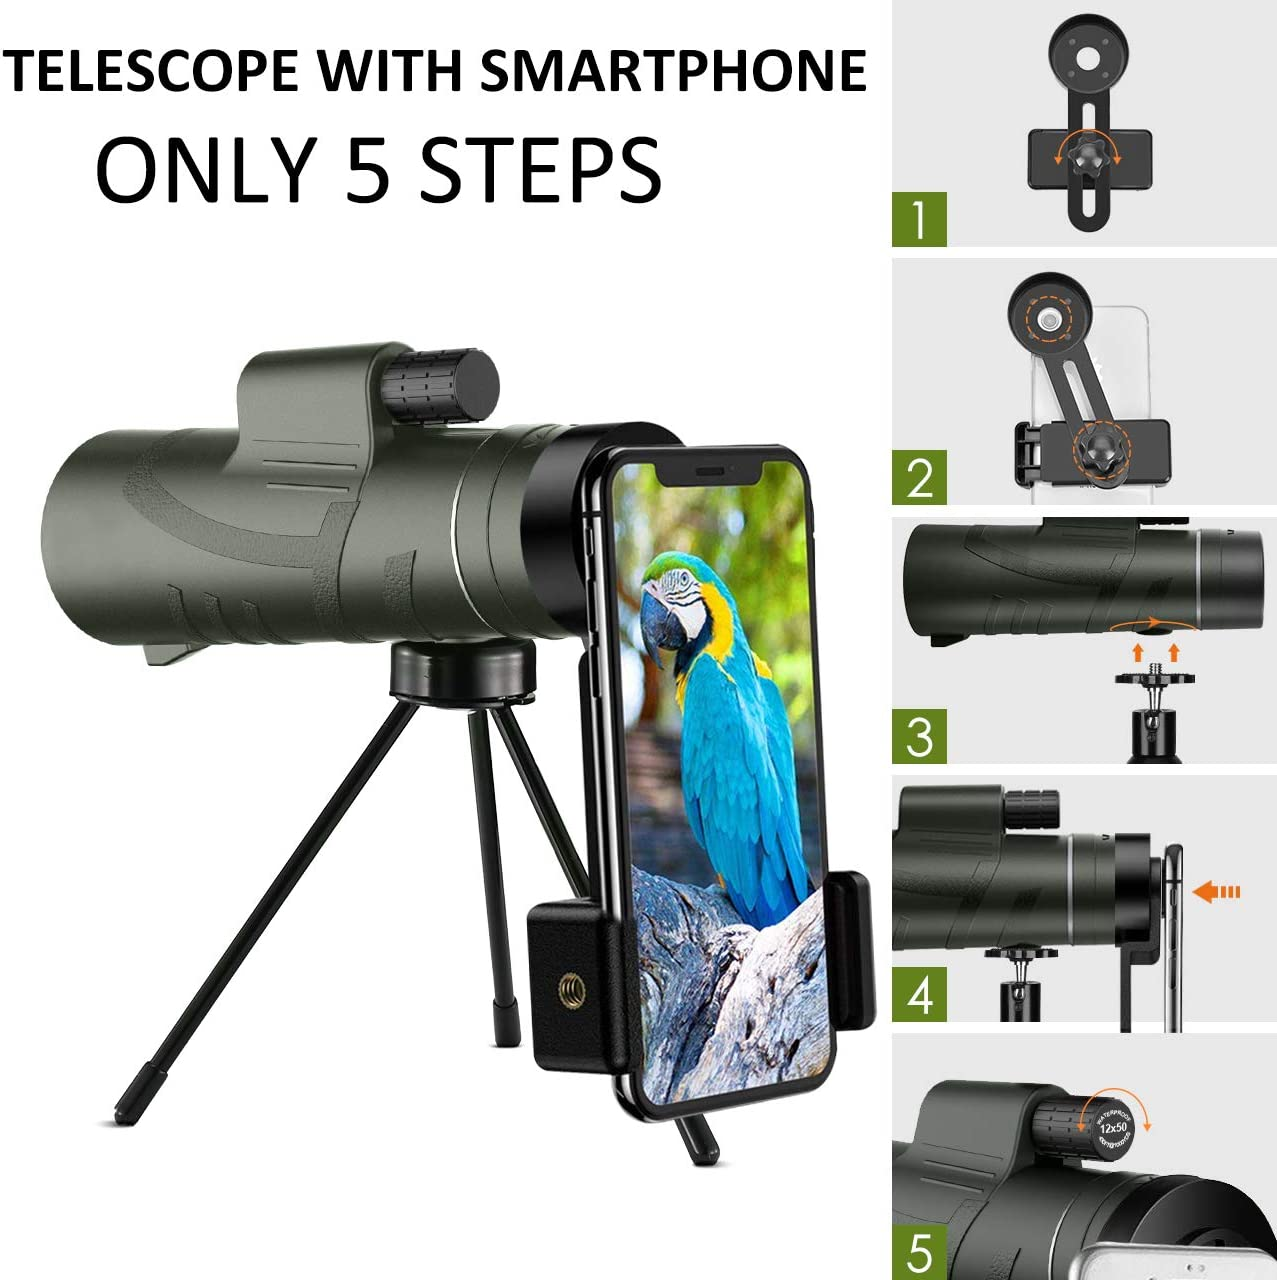 Monocular Telescope - 12X42 Monocular for Bird Watching, IPX7 Waterproof HD Monocular for Adults & Kids with Smartphone Holder & Tripod for Bird Watching, Hunting, Camping, Wildlife Scene, Jungle Green : Camera & Photo